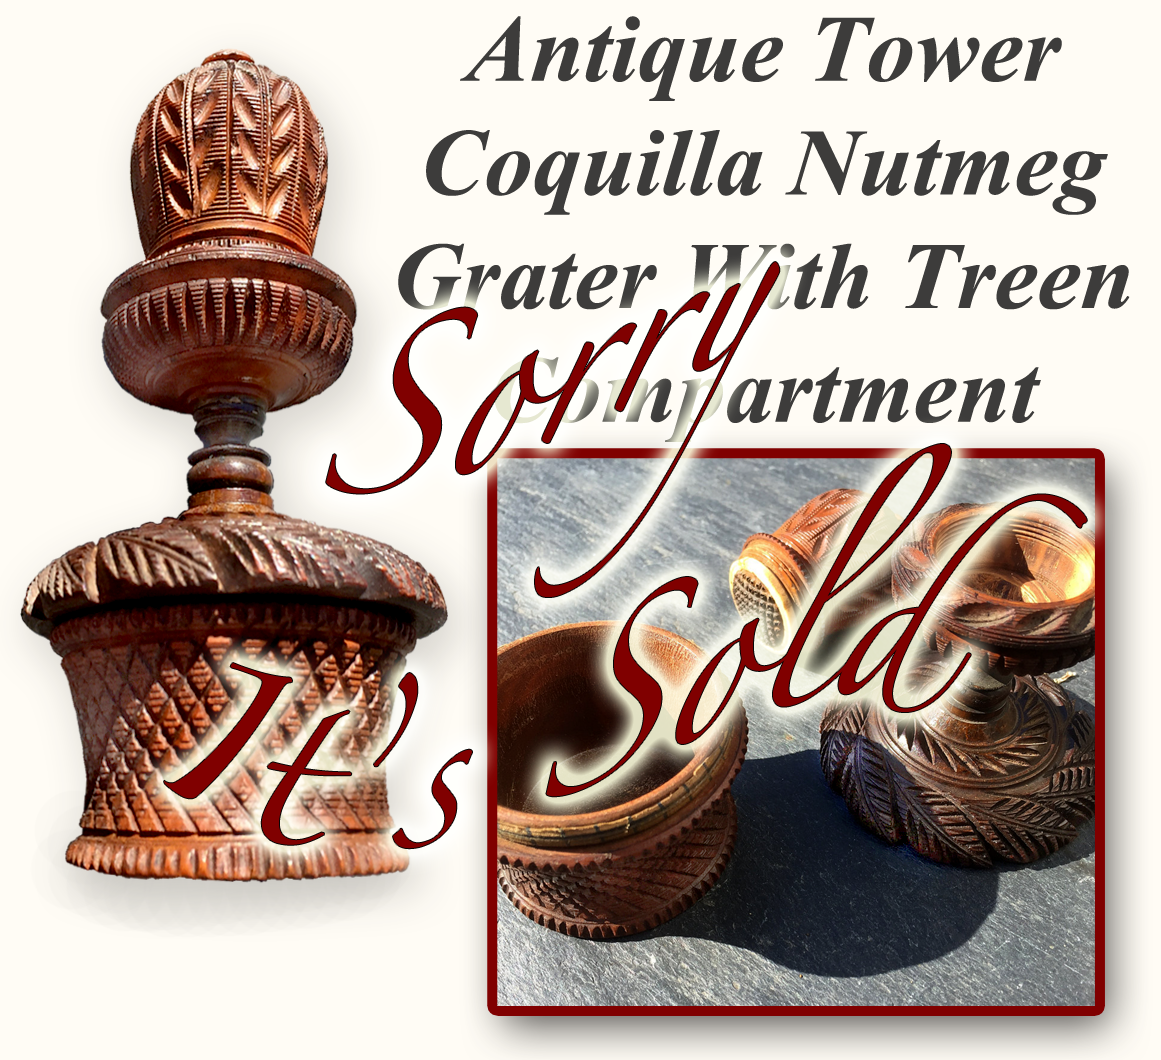 Coquilla Nut & Treen Tower Nutmeg Grater